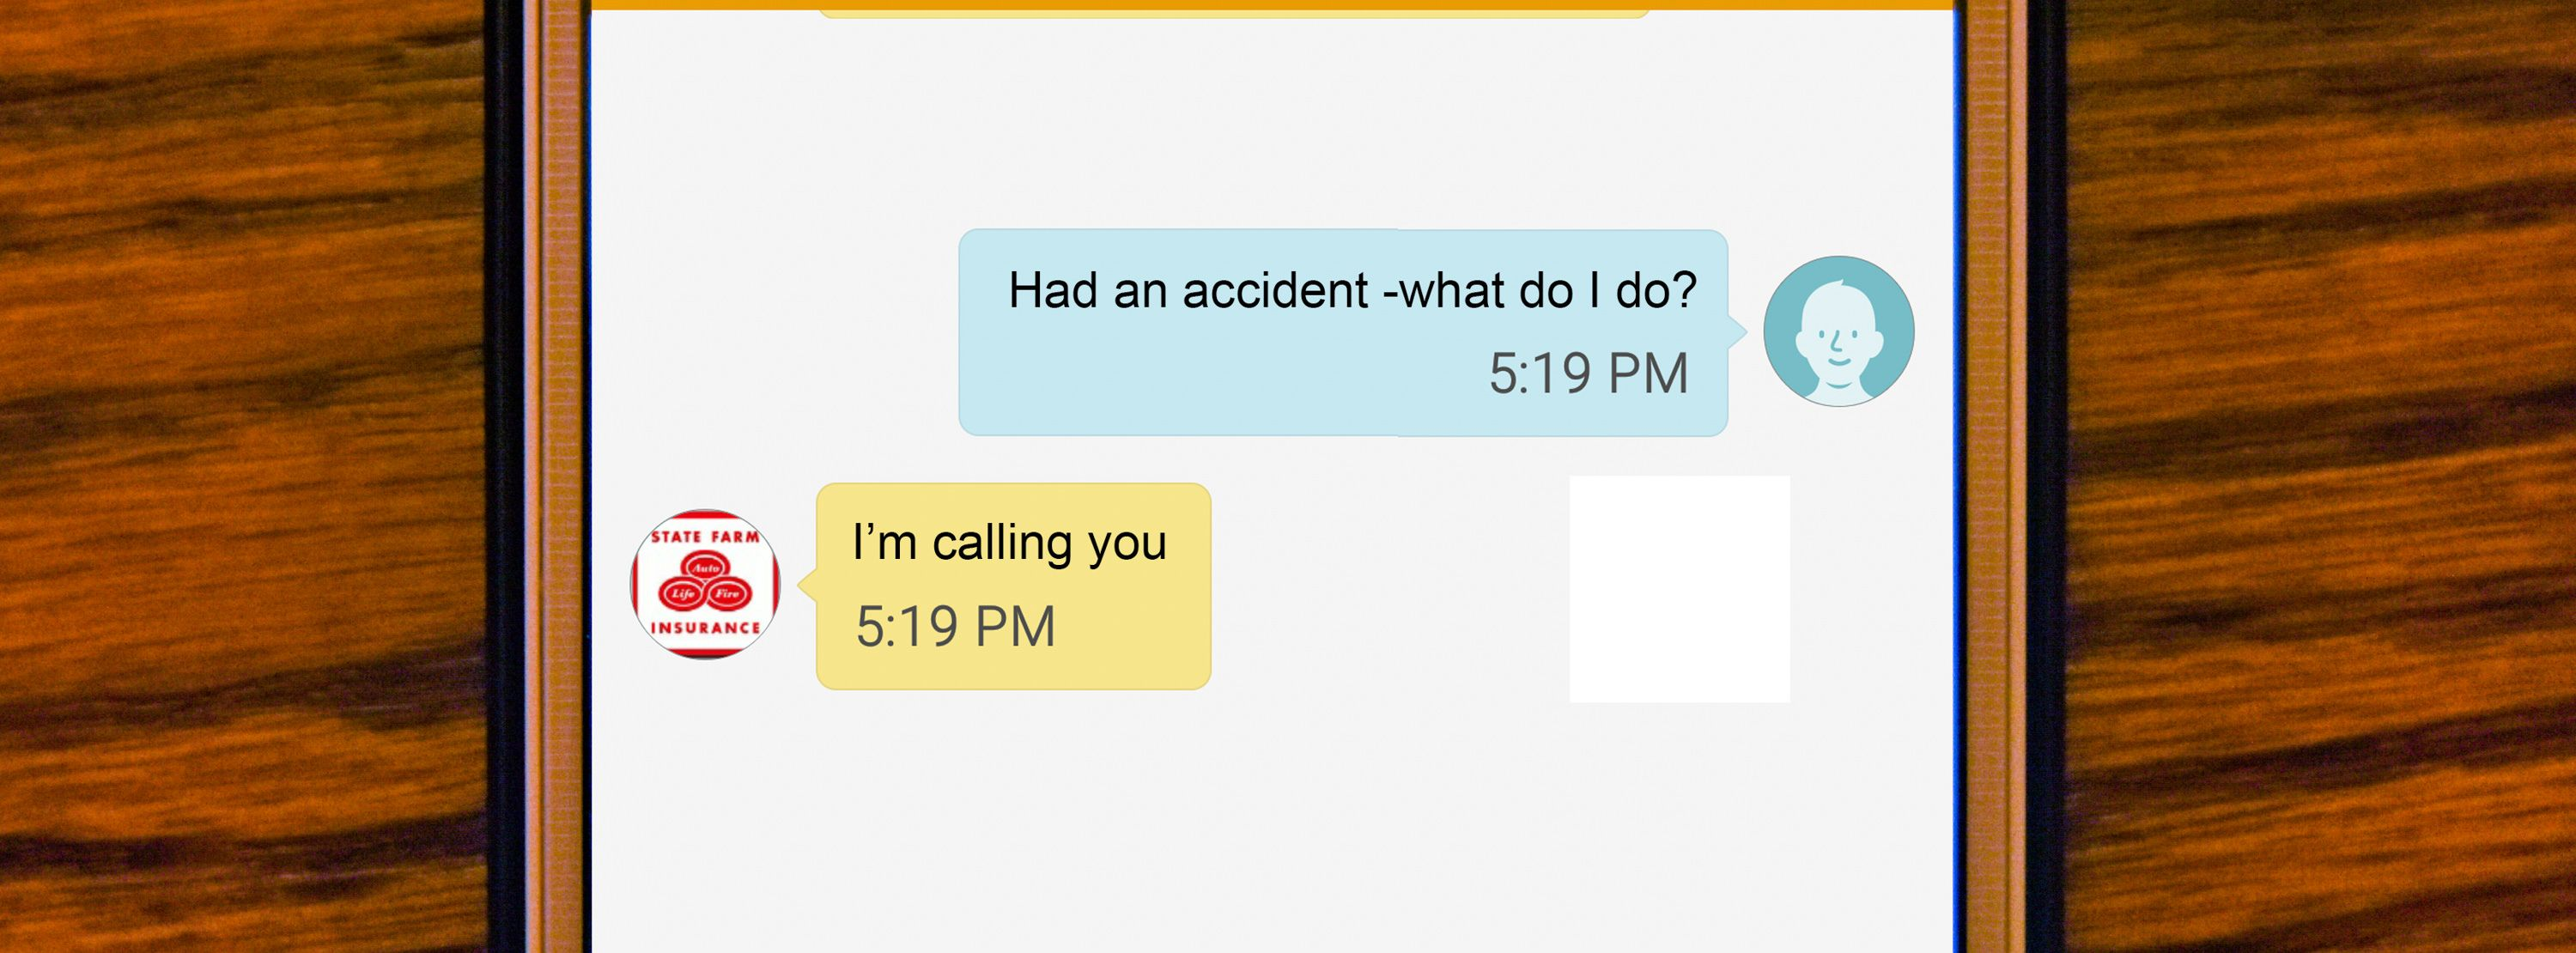 Can You Text Your Insurance Agent If You Need Help Craig Lincoln Statefarm 815 439 3993 State Farm Insurance Insurance Agent Farm Insurance